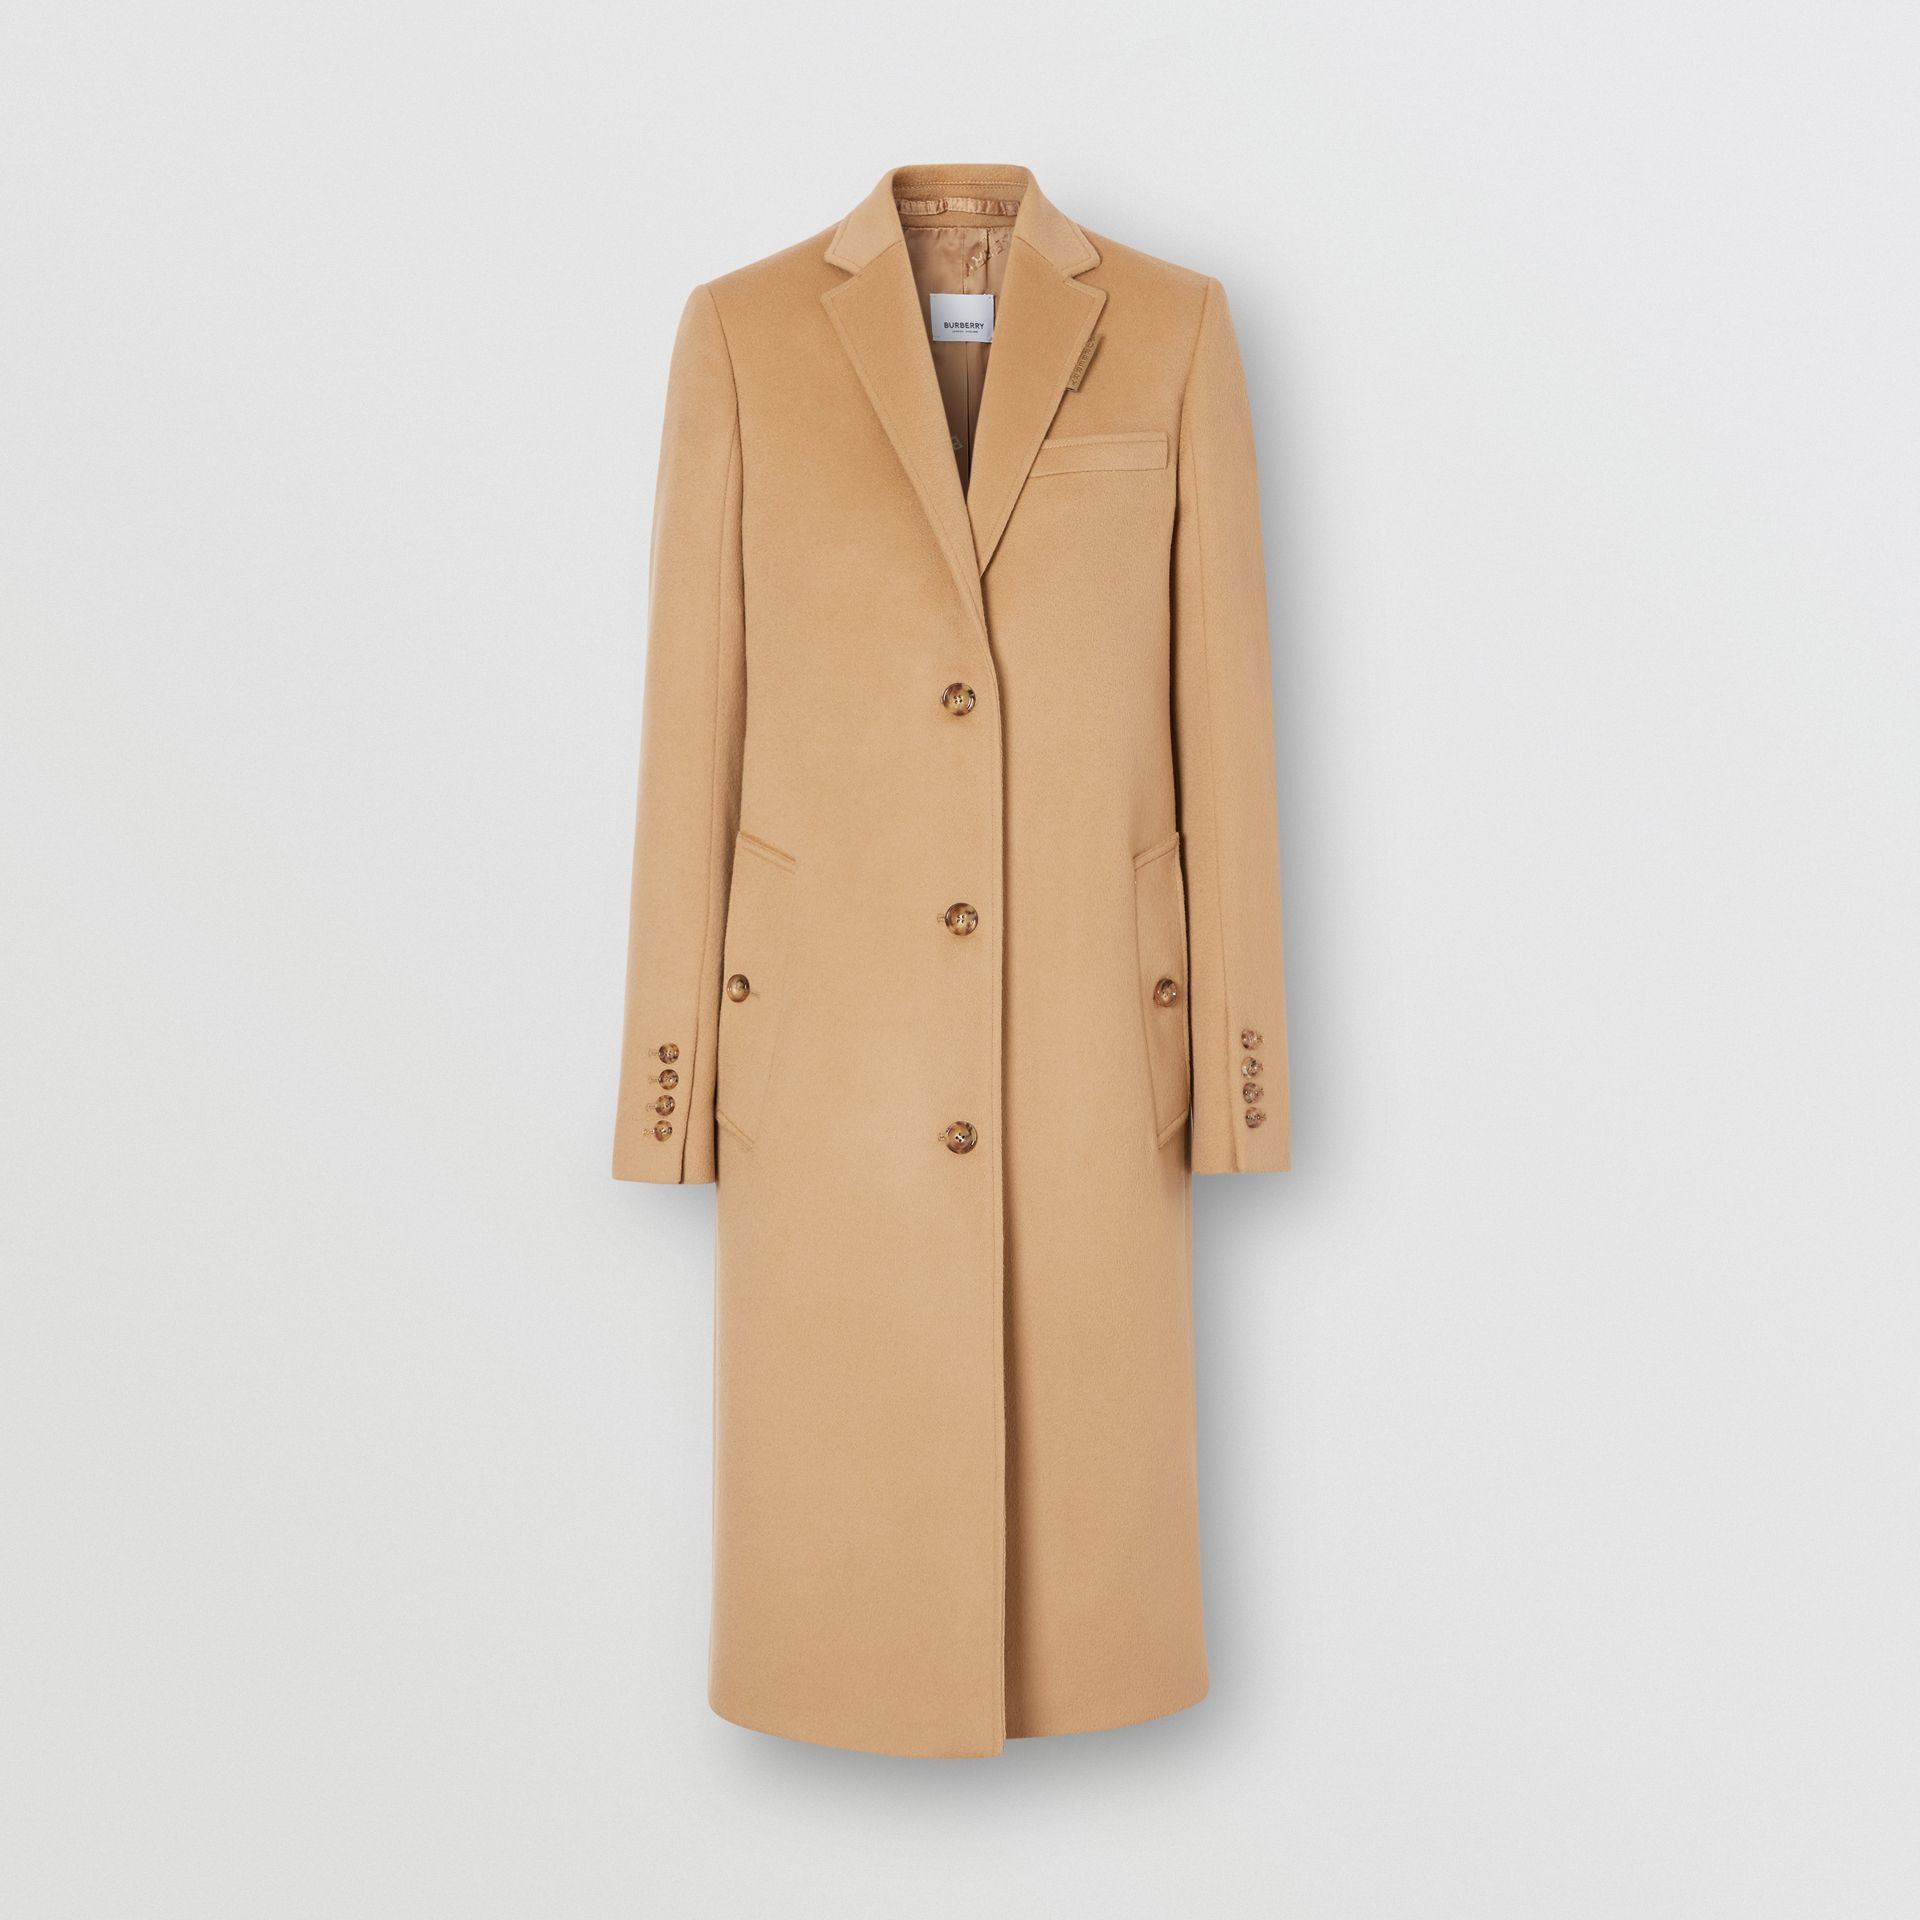 Wool Cashmere Tailored Coat in Light Camel - Women | Burberry - gallery image 3